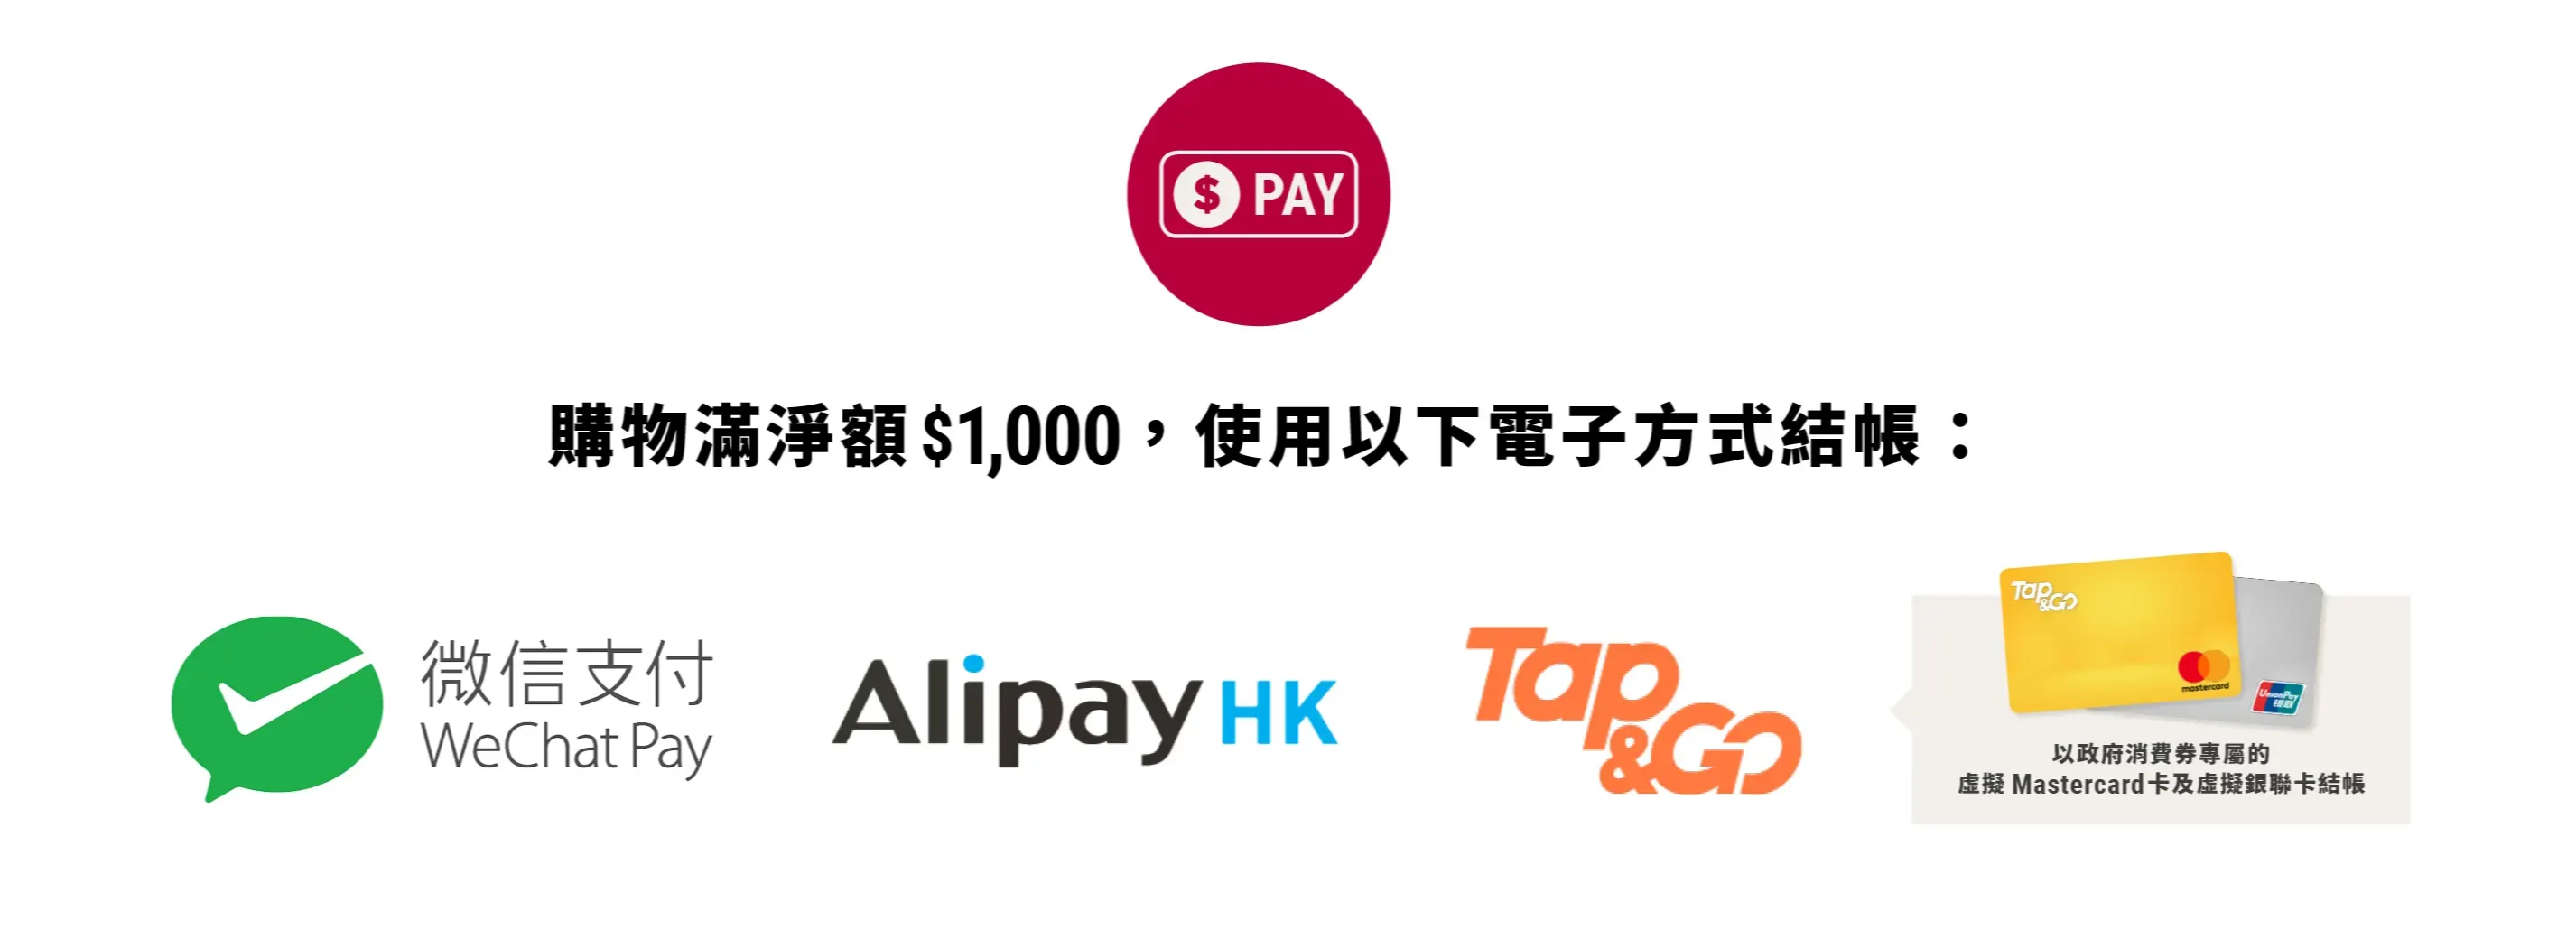 Consumption Voucher, WeChat Pay, AliPay, Tap&Go, Mastercard, Union Pay 消費券優惠